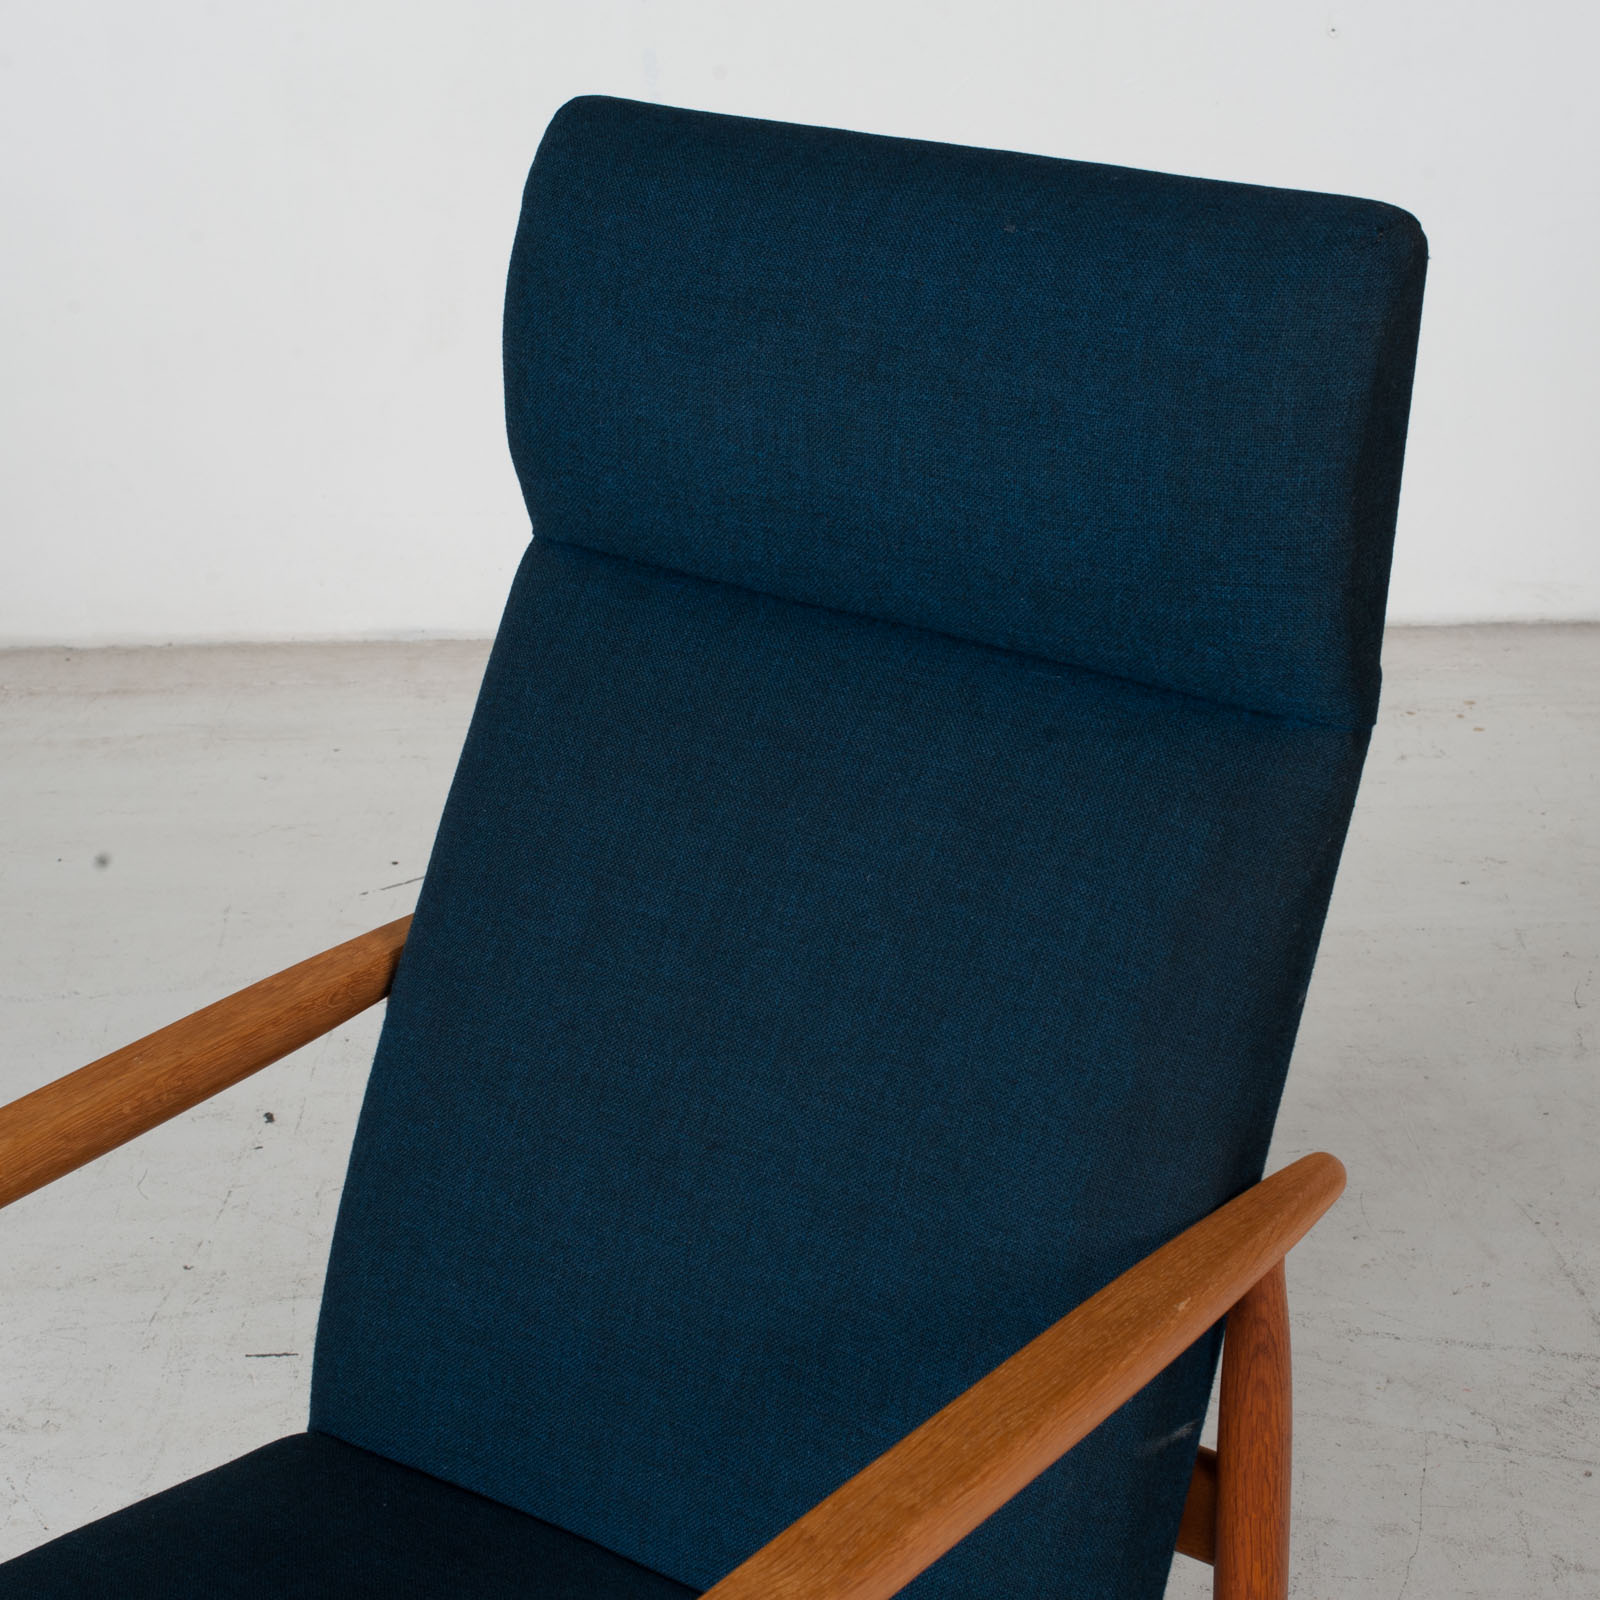 Armchair By Ejvind A. Johansson In Blue Upholstery, 1960s, Denmark7